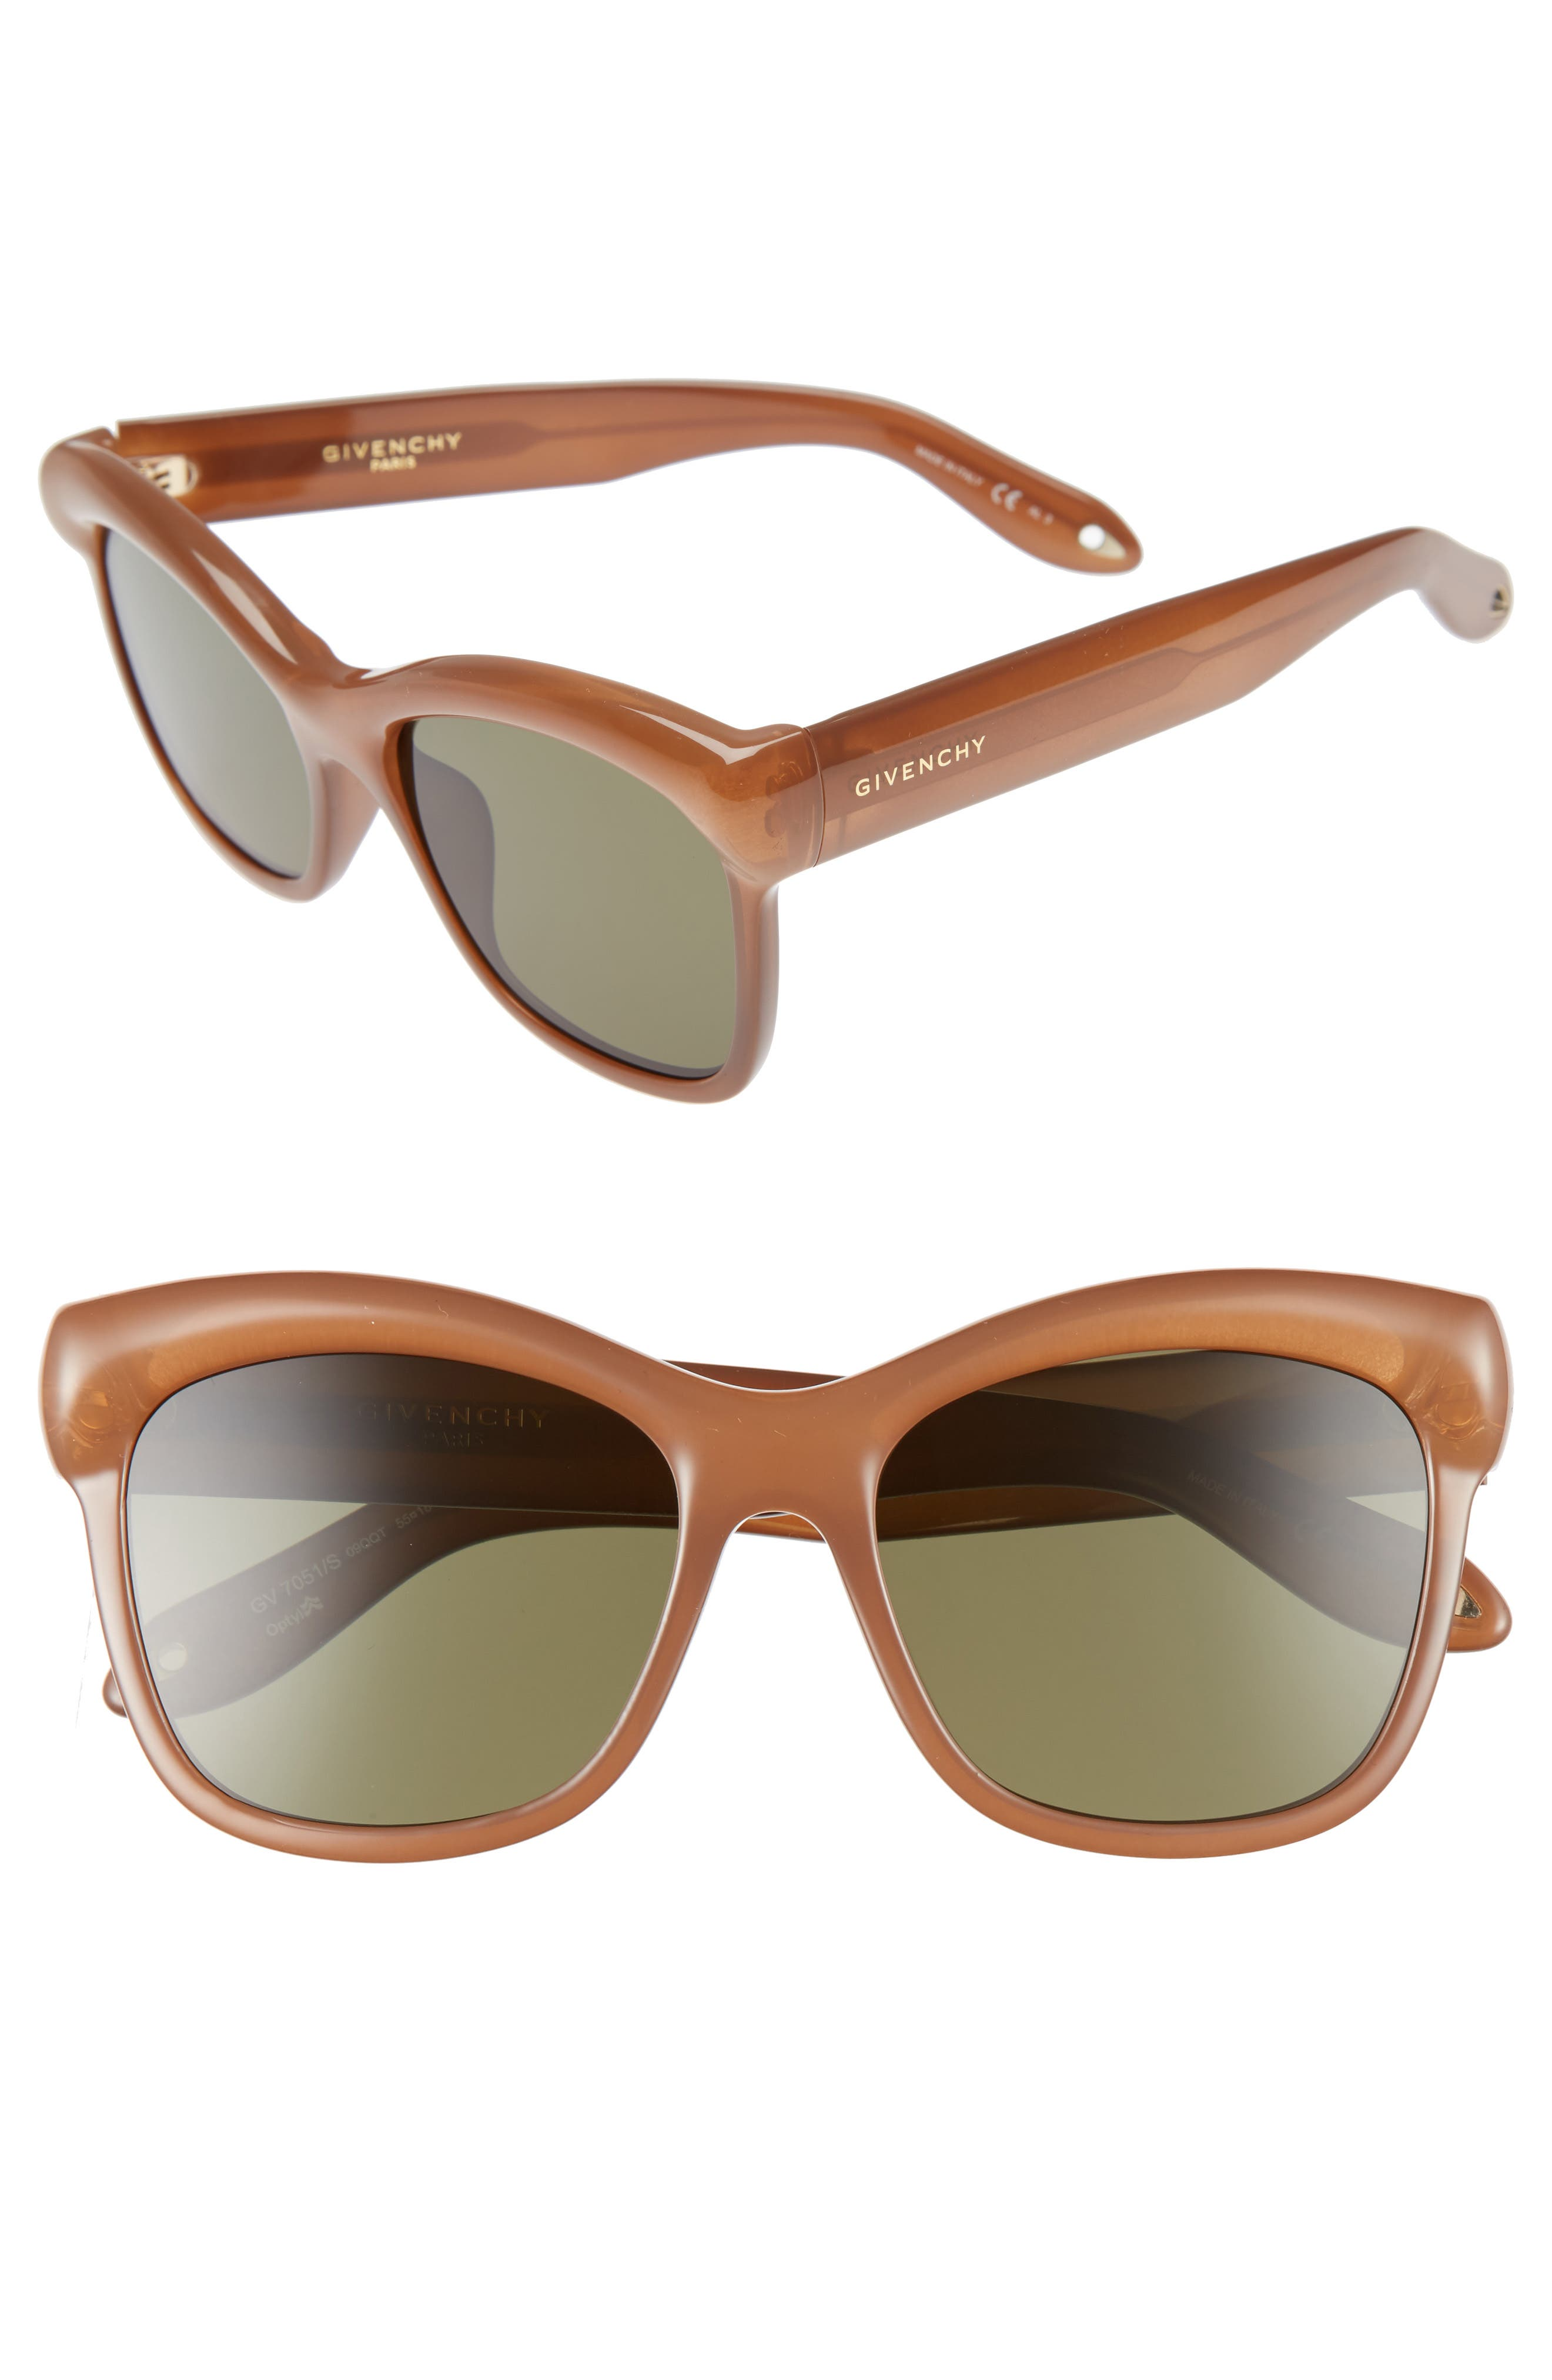 Alternate Image 1 Selected - Givenchy 55mm Retro Sunglasses